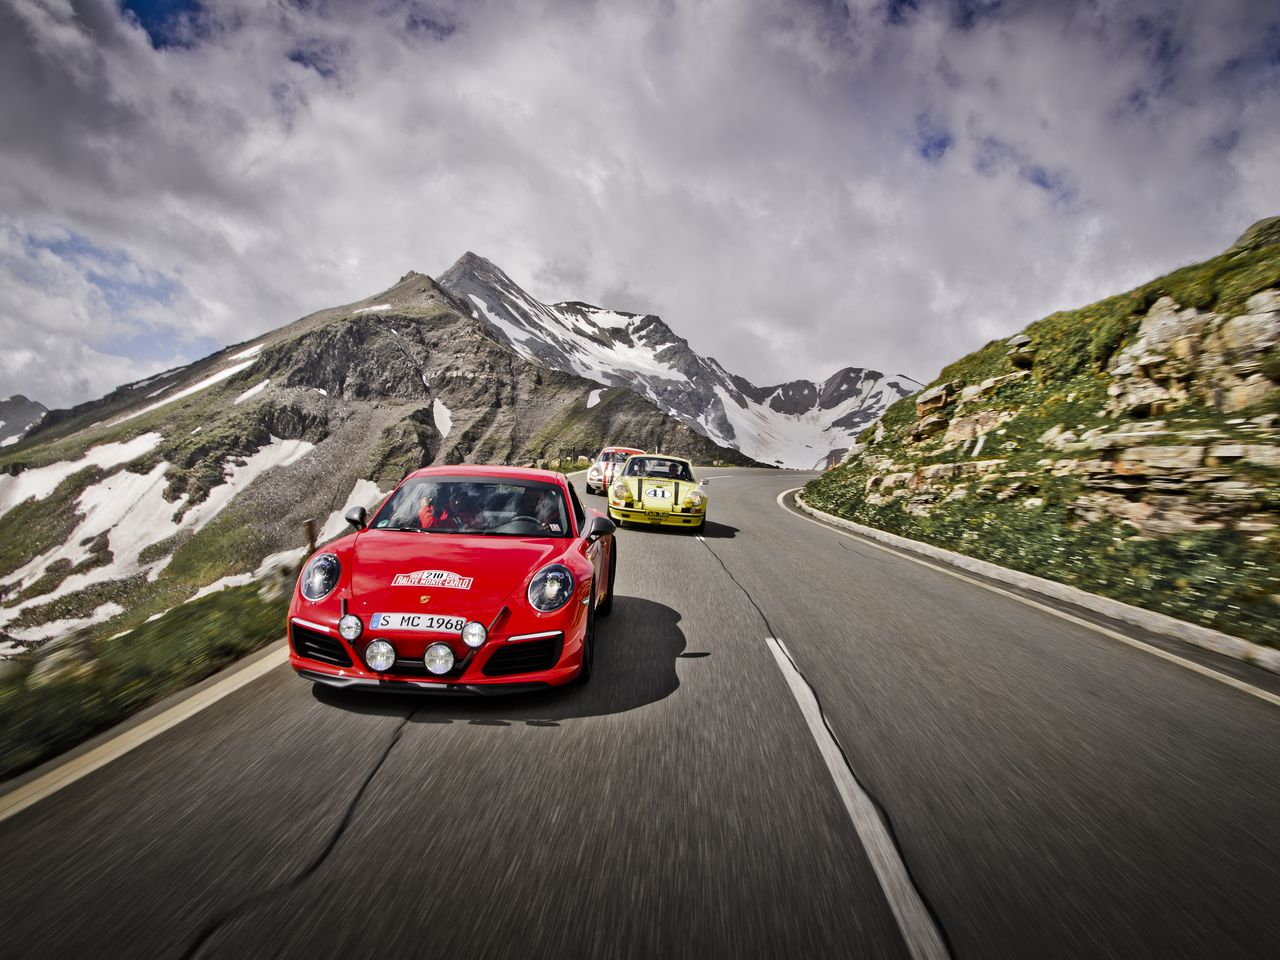 Other illustrious models on the High Alpine Road: The red Porsche 911 Carrera T in its Rallye Monte Carlo finery from 2018 is a priceless one-off. It is followed by two Porsche 911 ST.